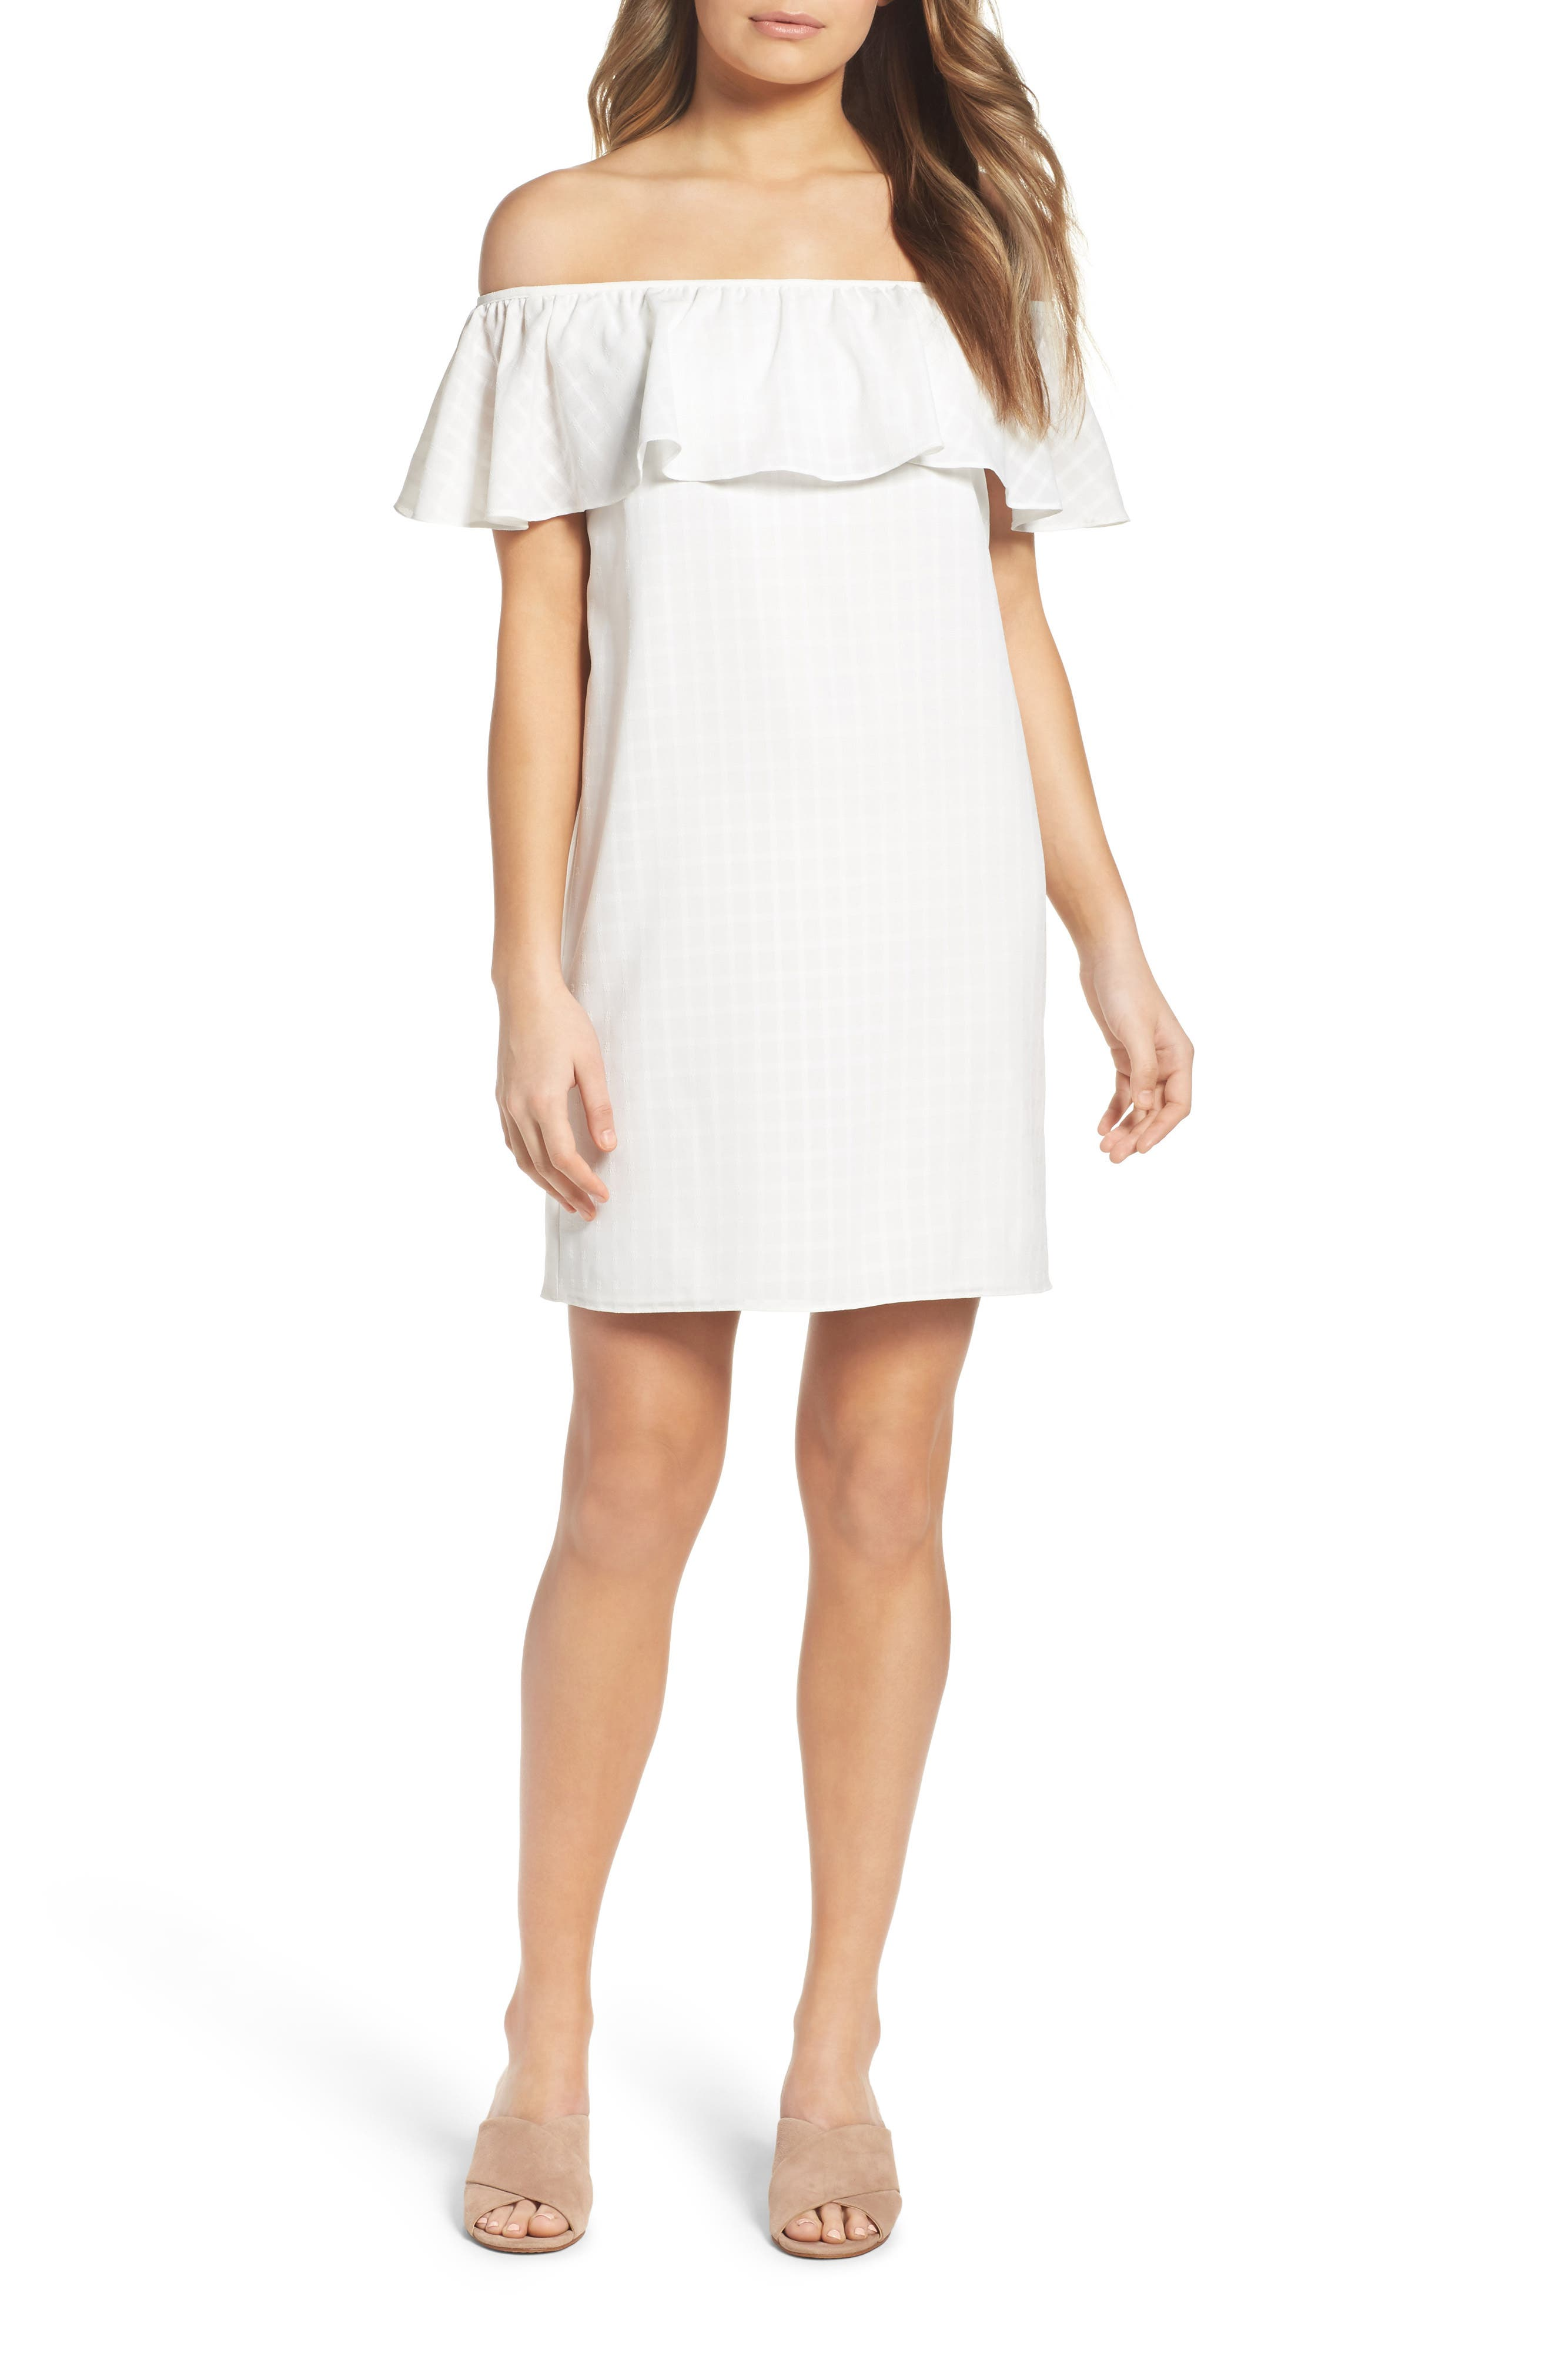 Bonita Señorita Shift Dress,                         Main,                         color, 100